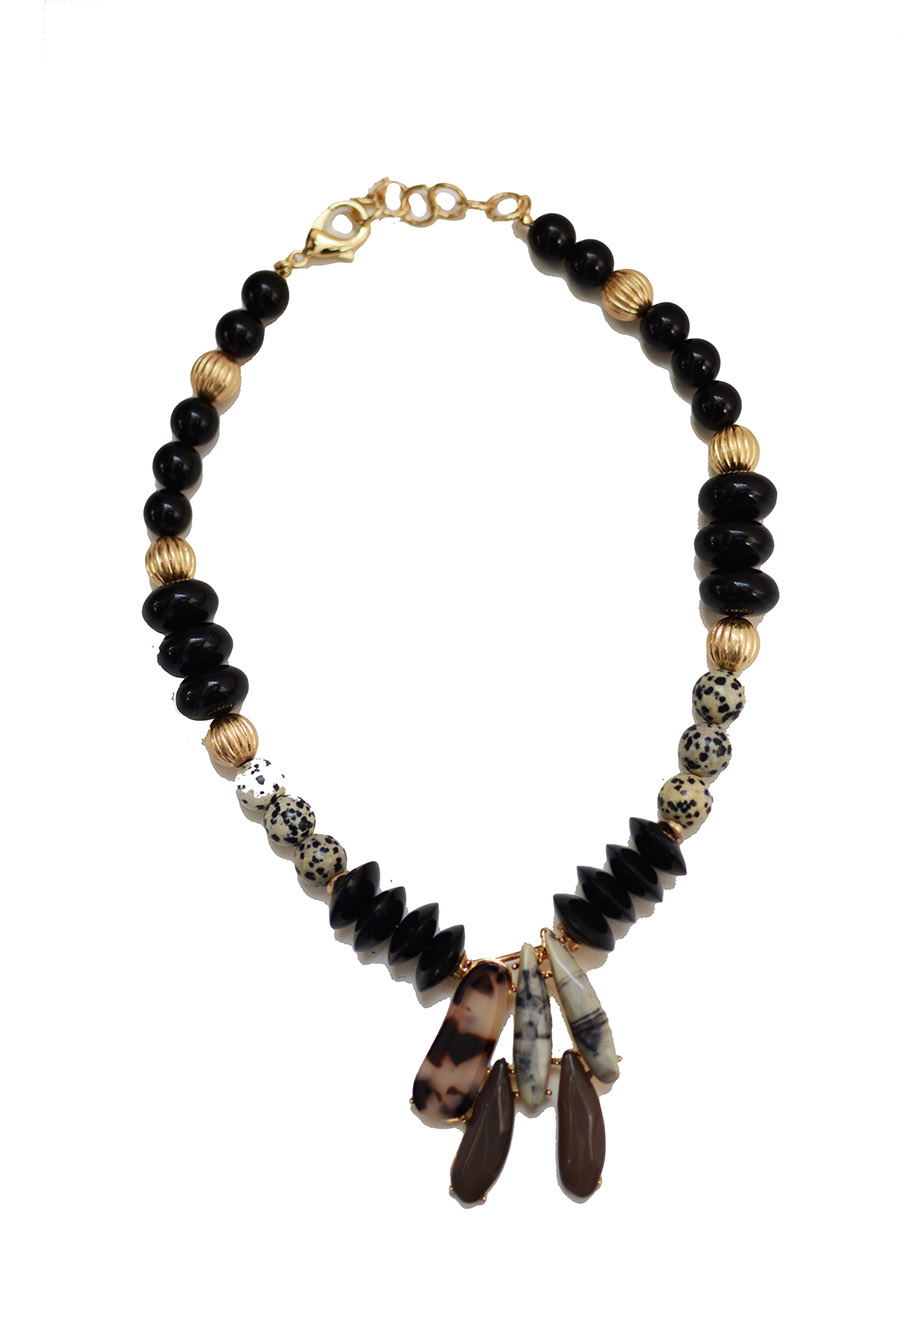 Bead and stone necklace  $49.